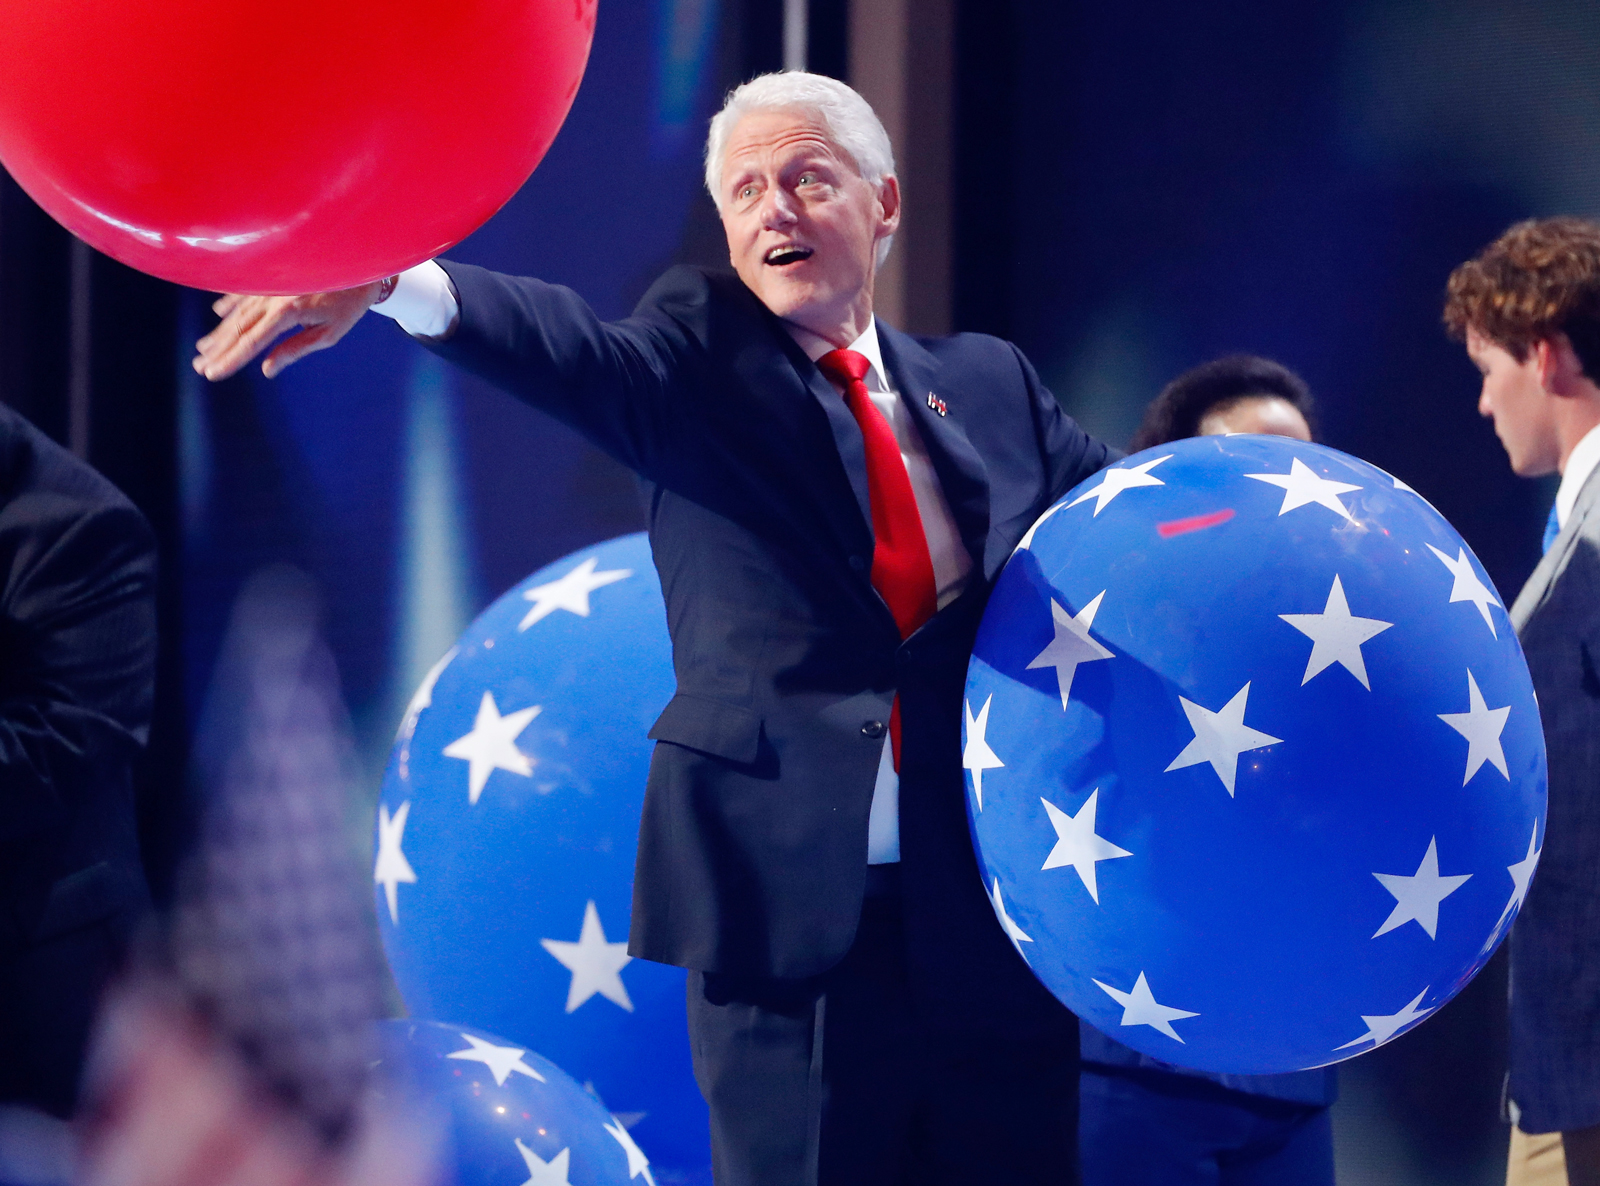 Bill Clinton Fell In Love With a Balloon?